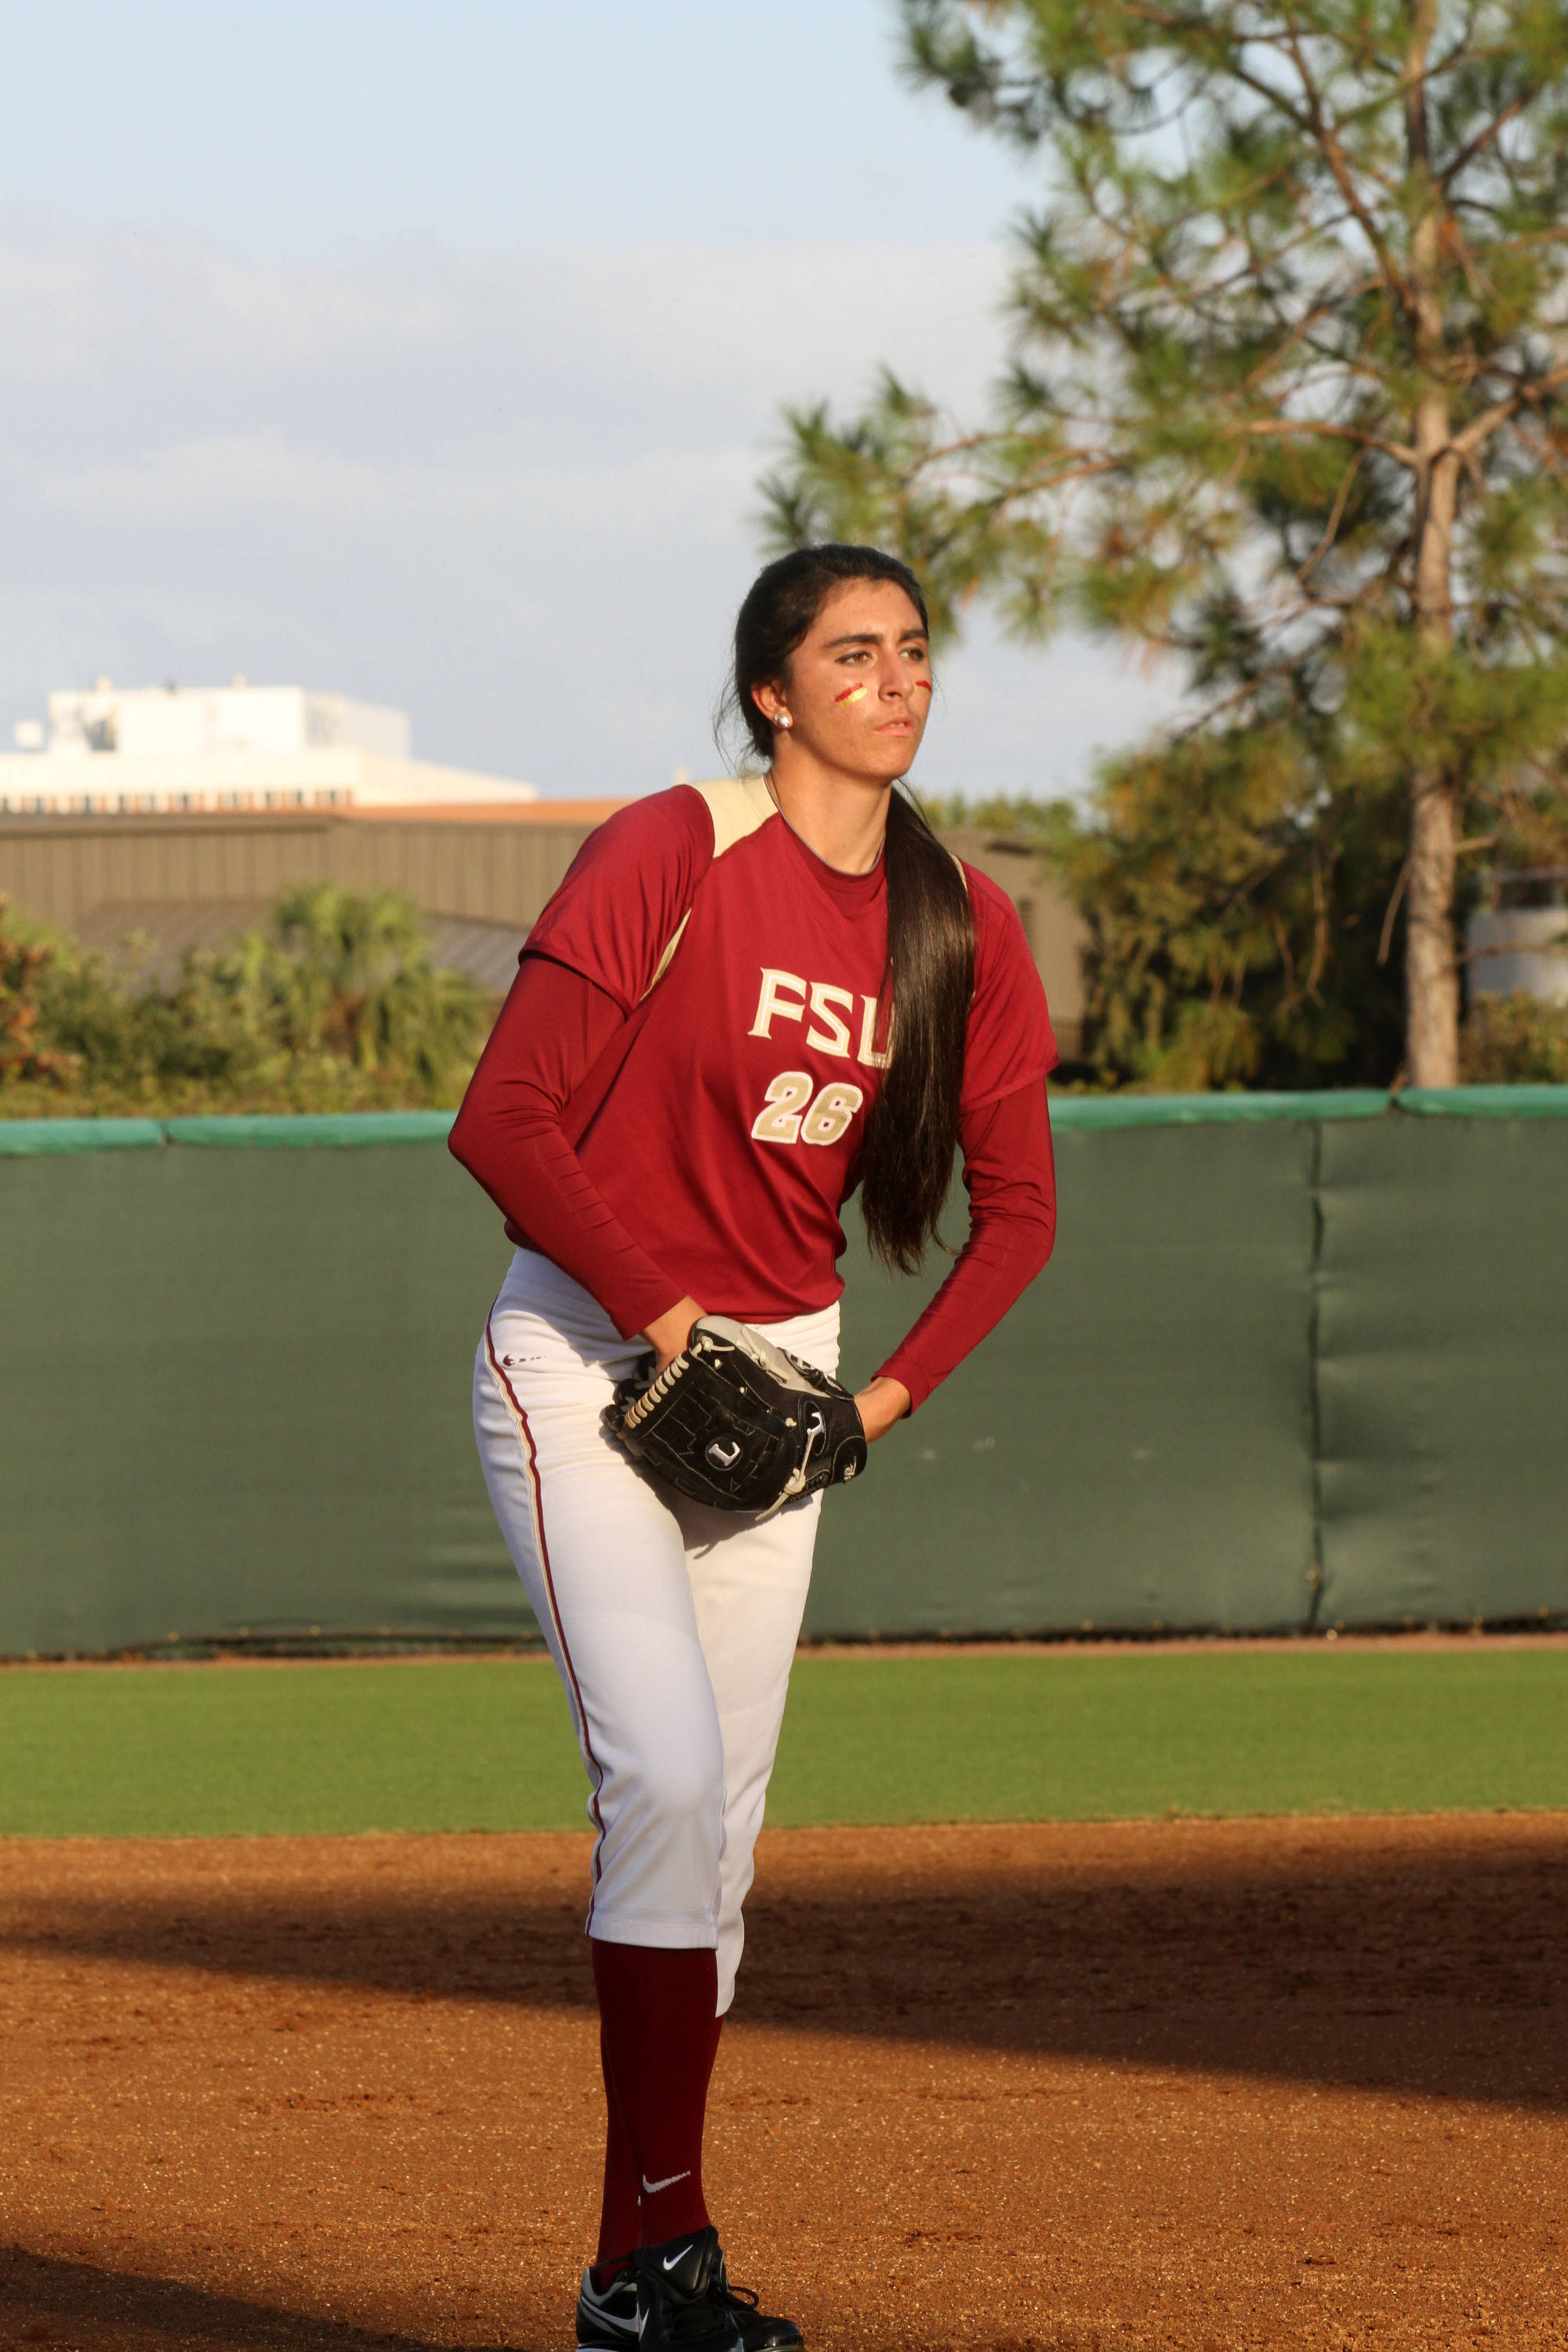 2012 FSU Softball Team Jessica Nori (26)